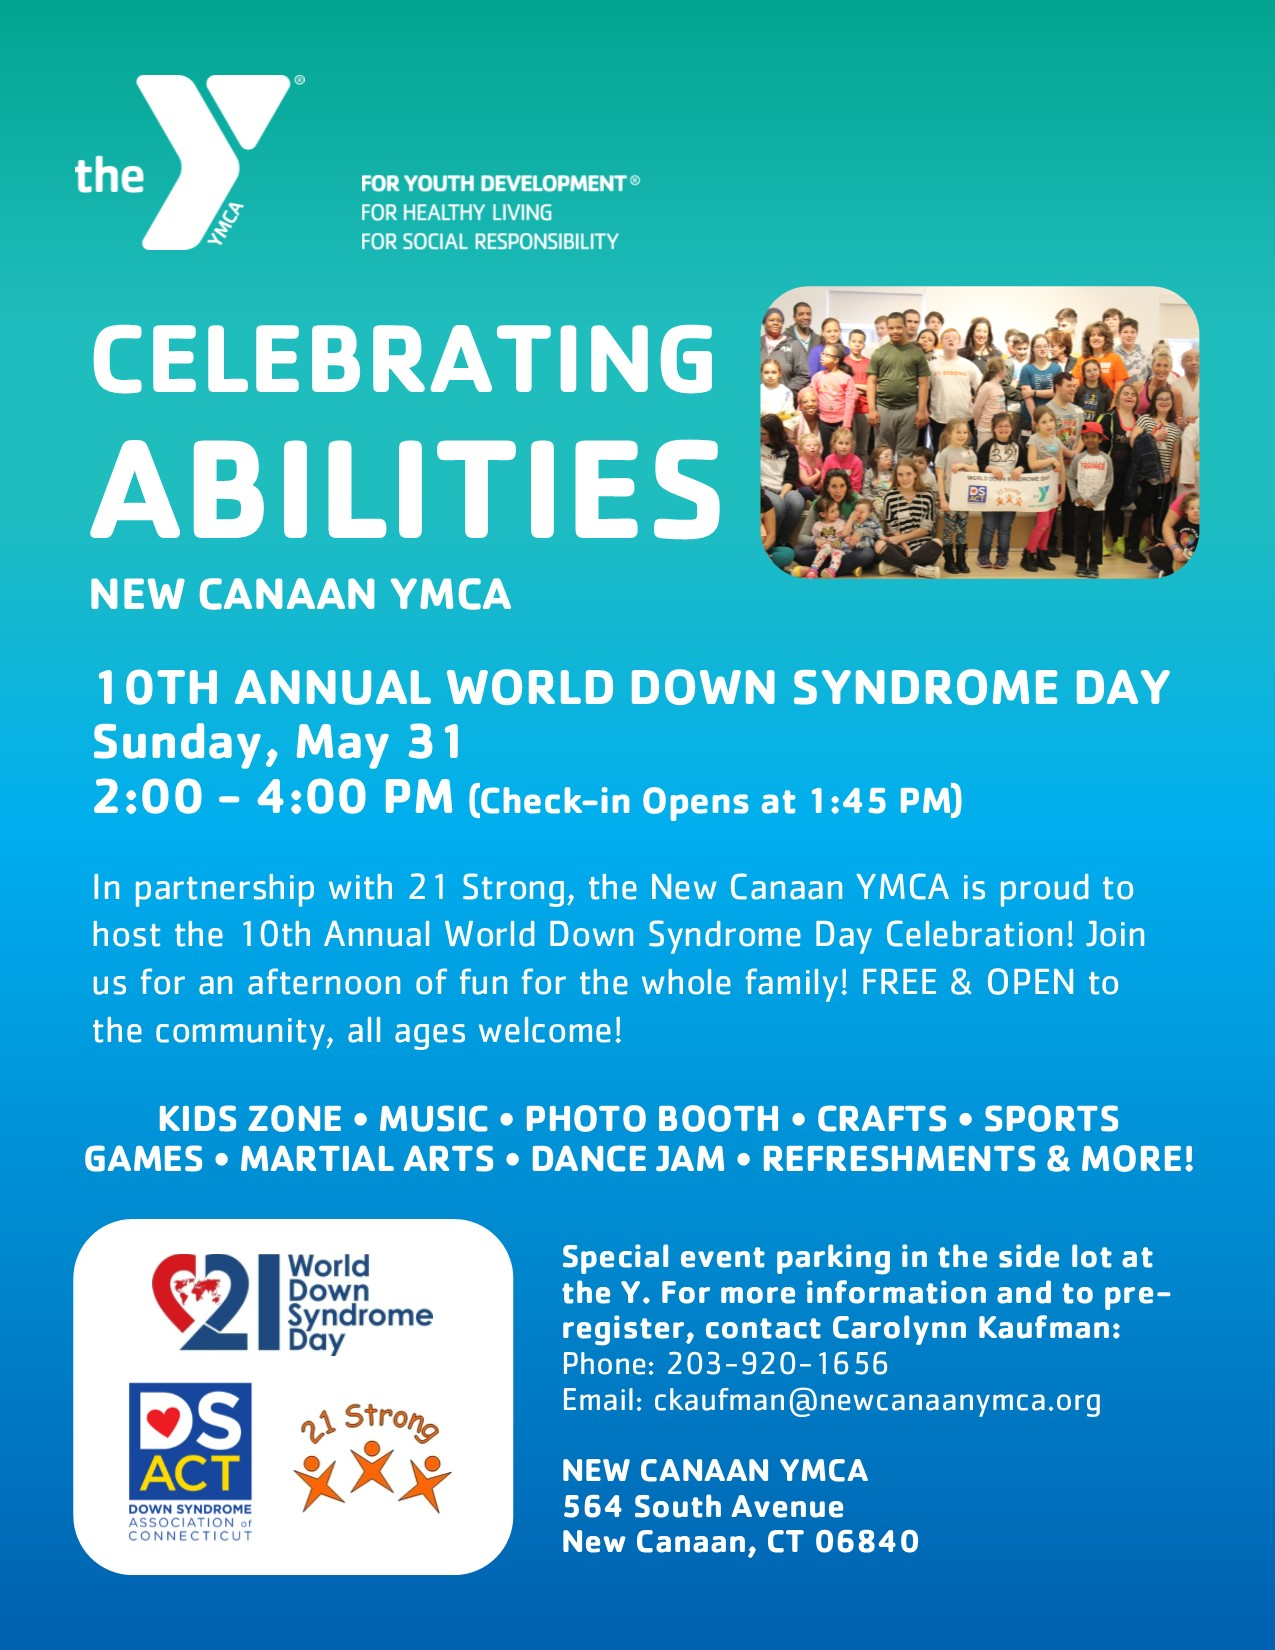 10th Annual World Down Syndrome Day @ New Canaan YMCA